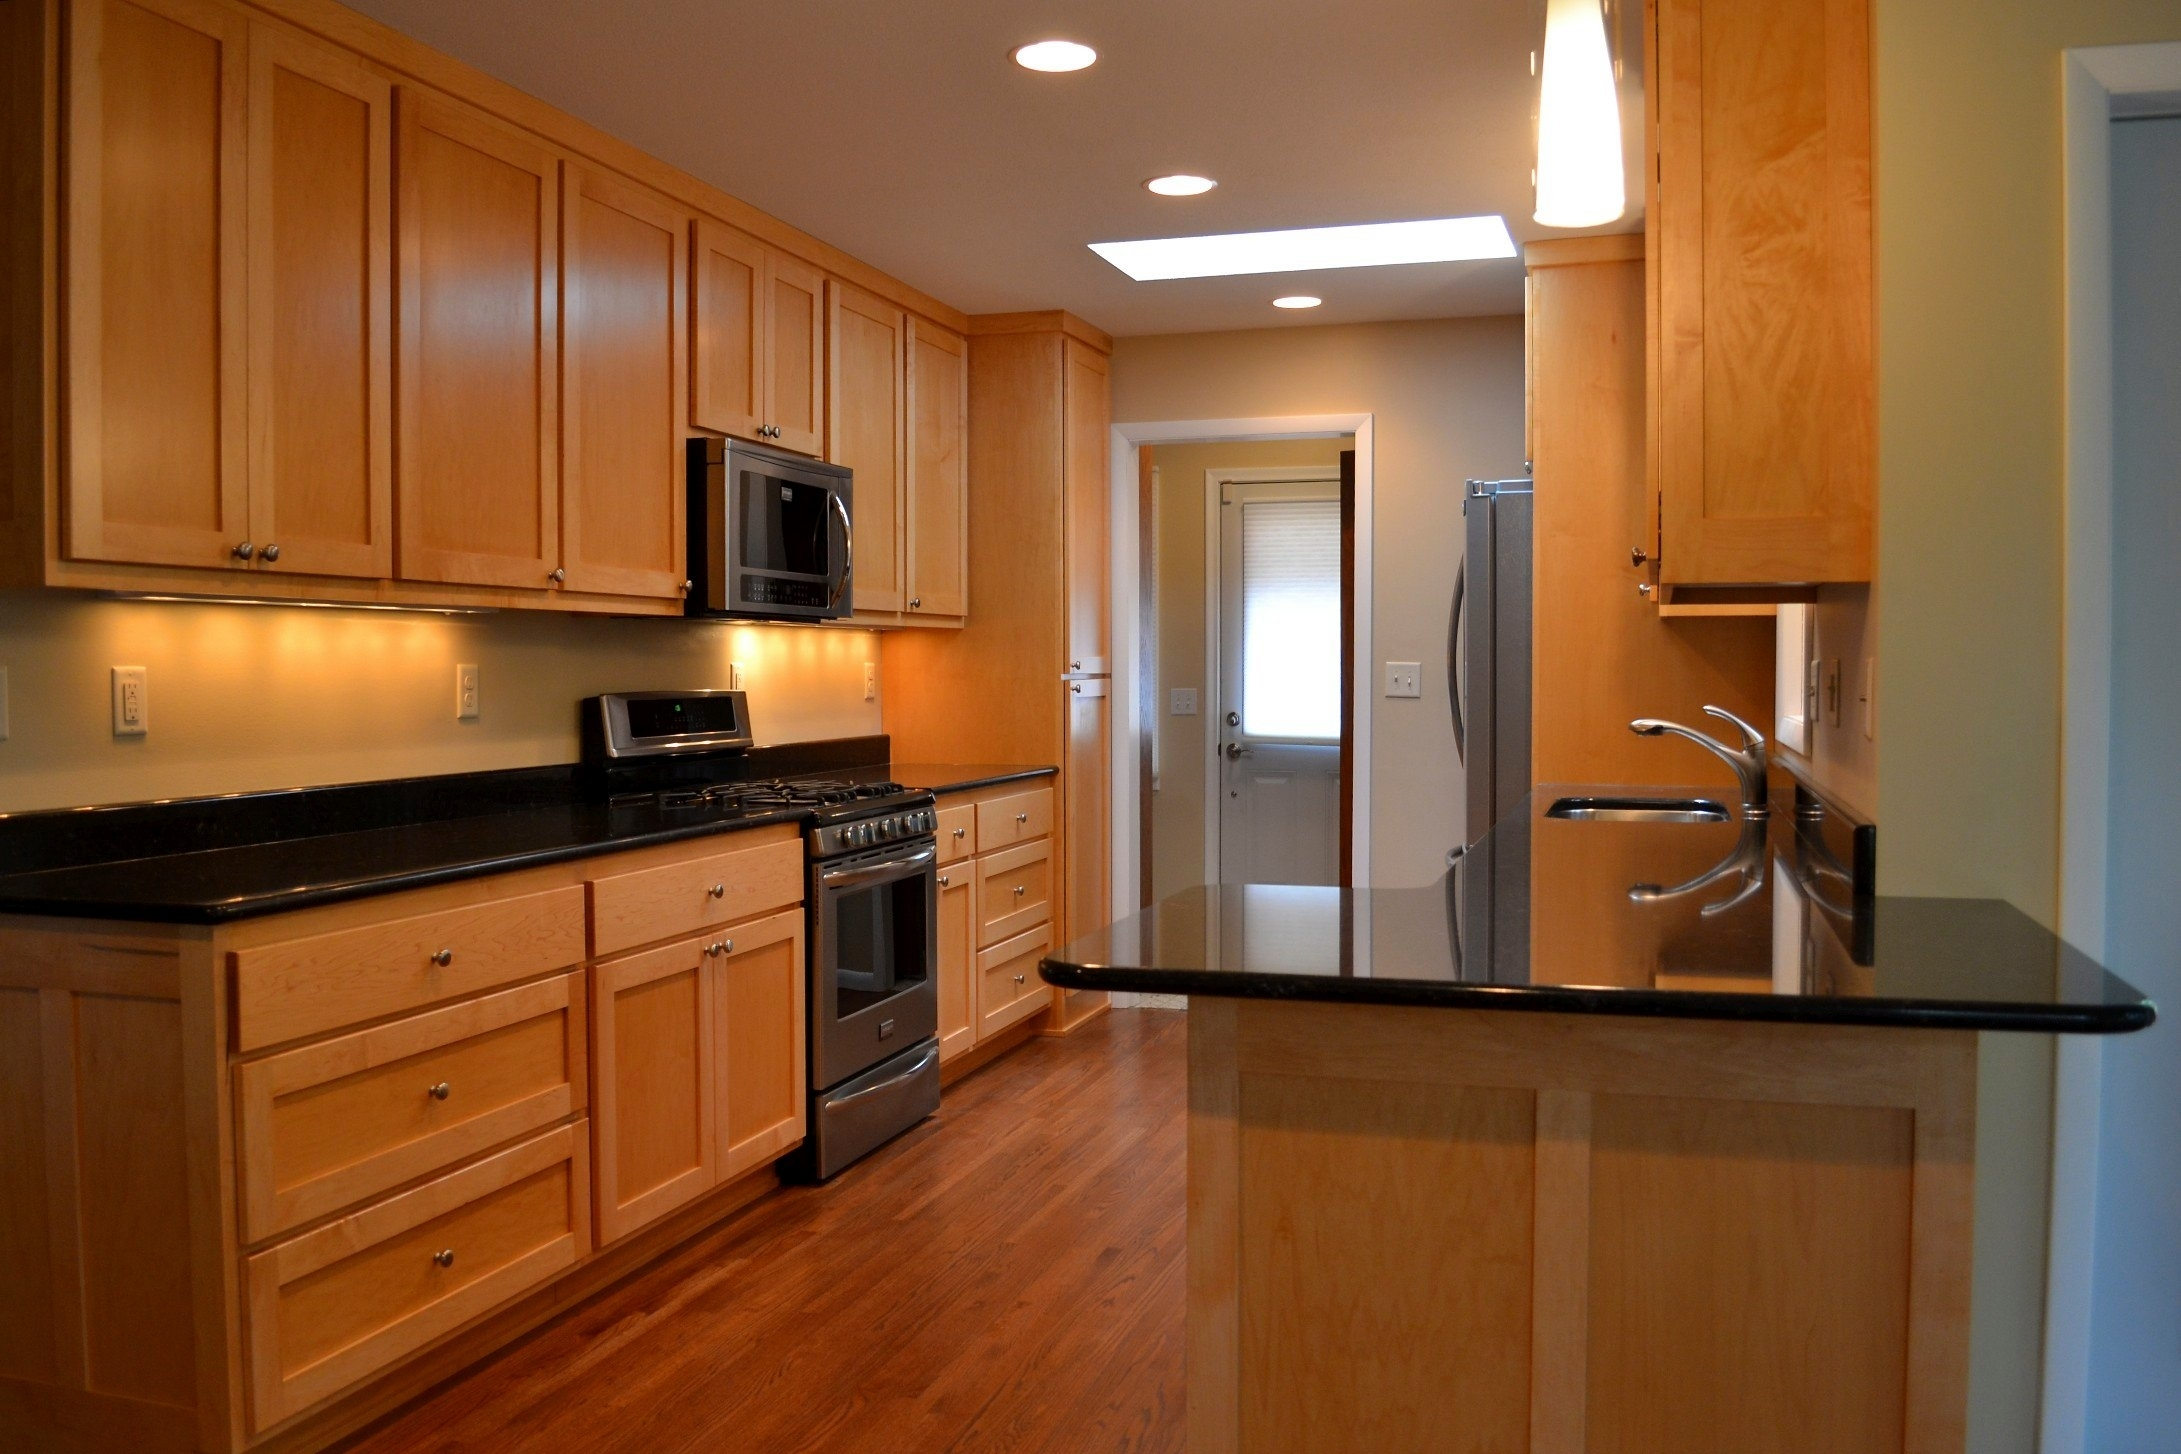 Furniture Polish For Kitchen Cabinets